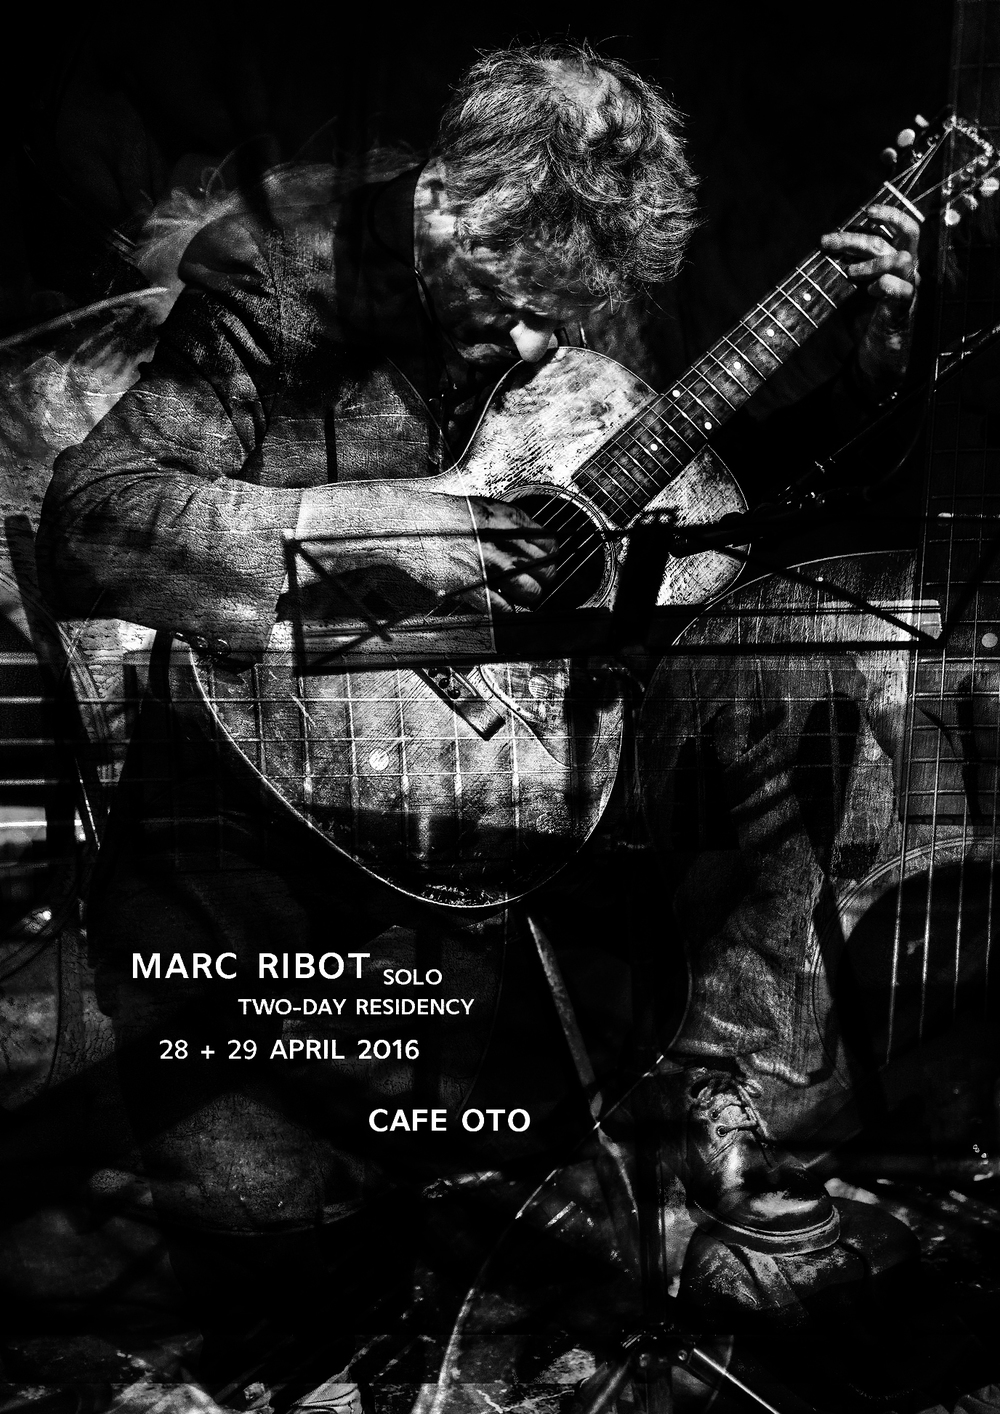 Poster design for Marc Ribot residency at Cafe OTO. Photos sourced from Dawid Laskowski.